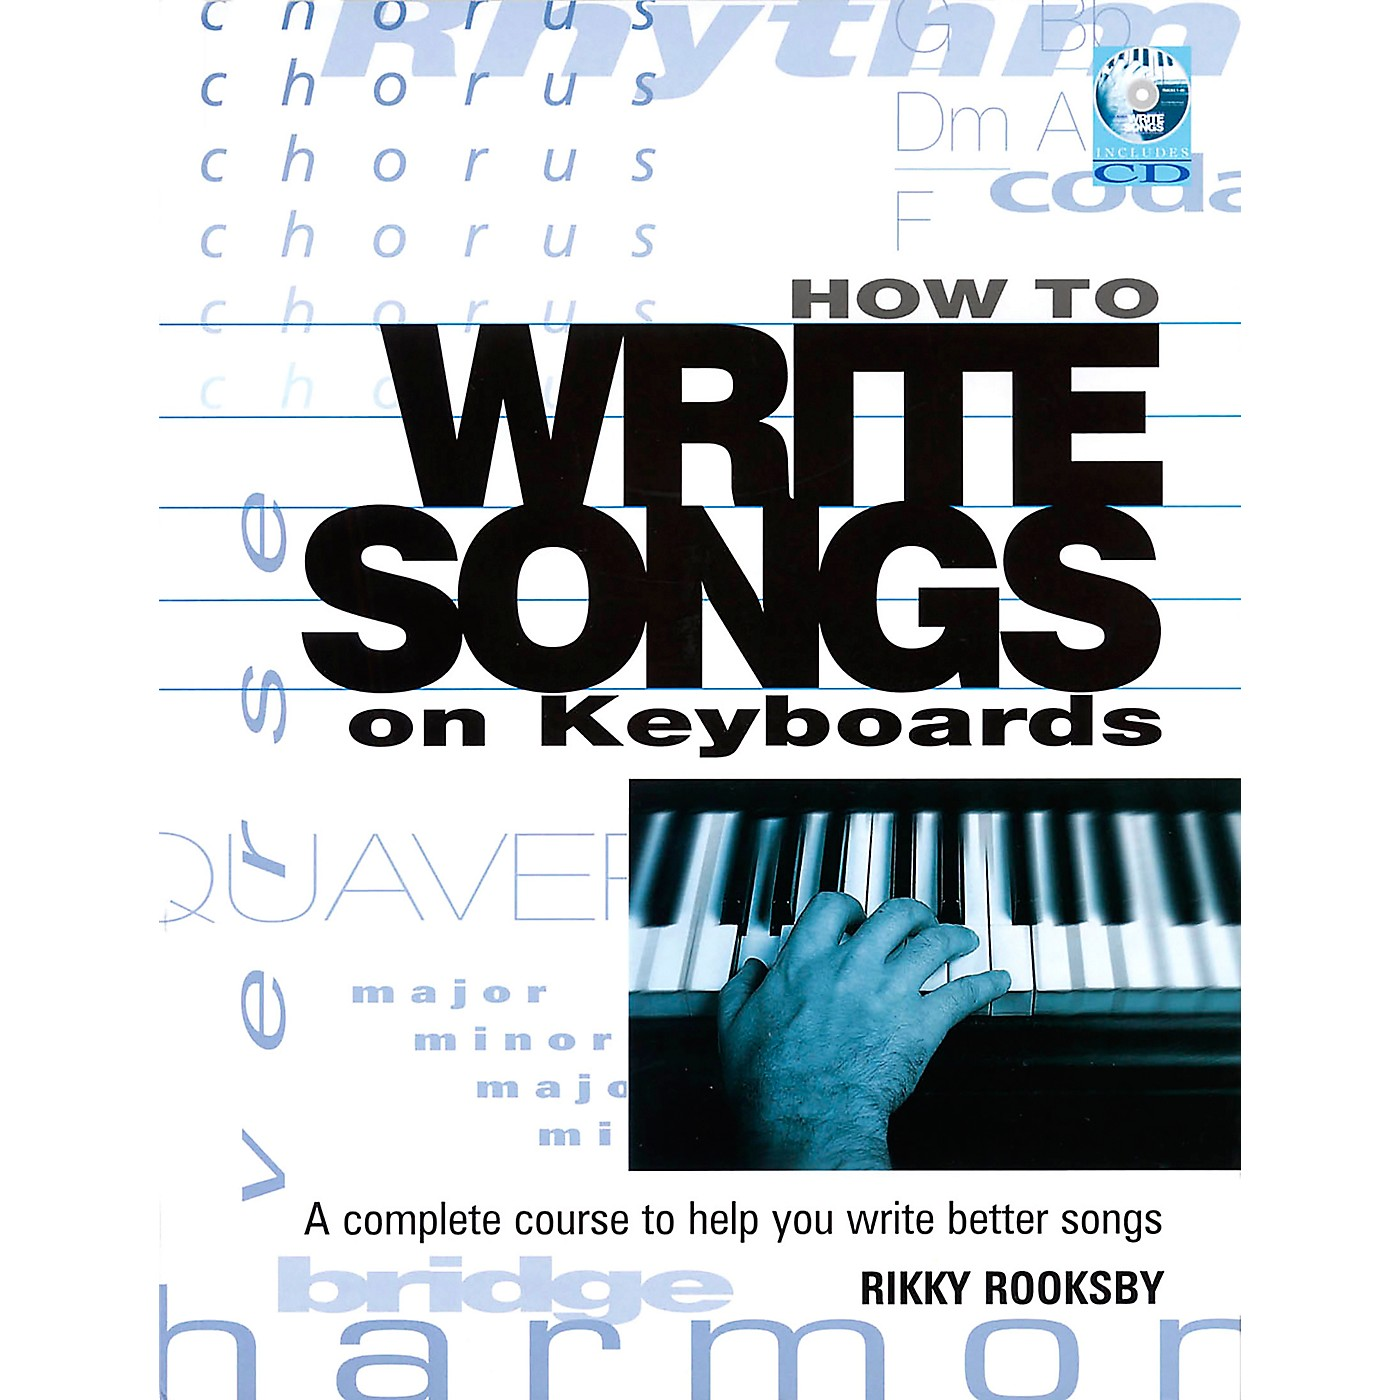 Backbeat Books How to Write Songs on Keyboards - A Complete Course to Help You Write Better Songs (Book) thumbnail